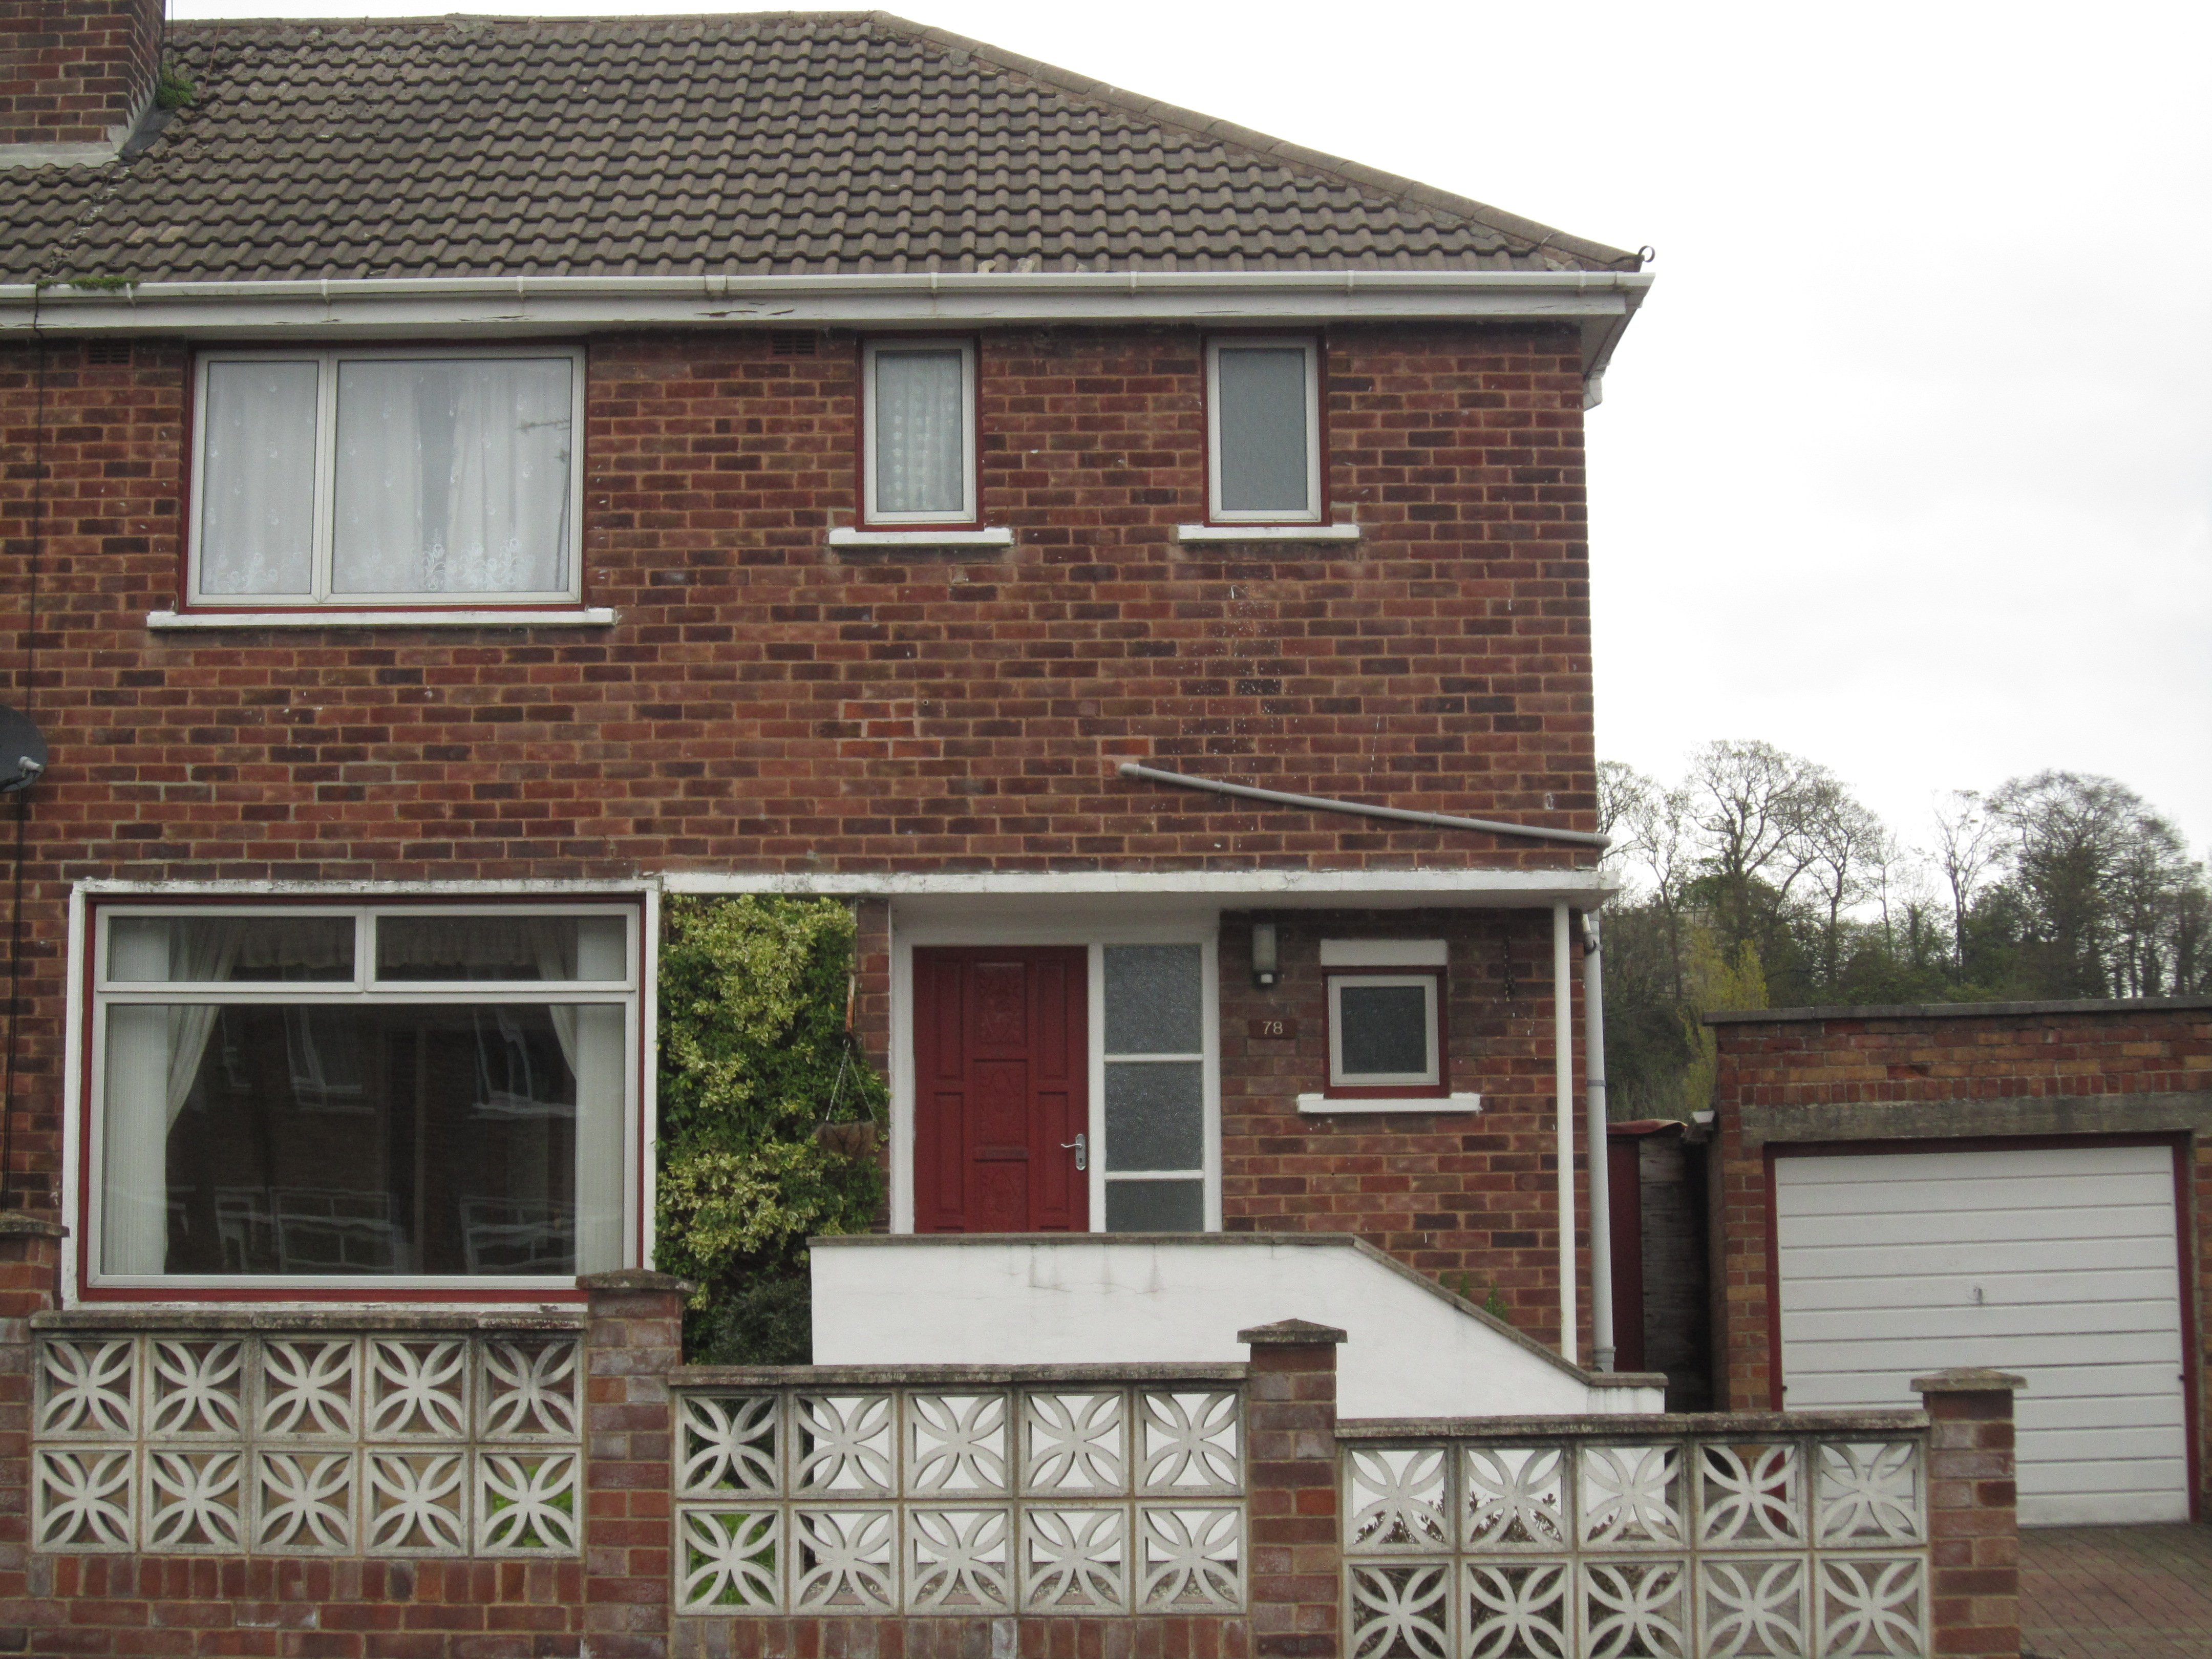 3 Bedroom Part Furnished Semi Detached To Rent On Millhouses, Sheffield, S7